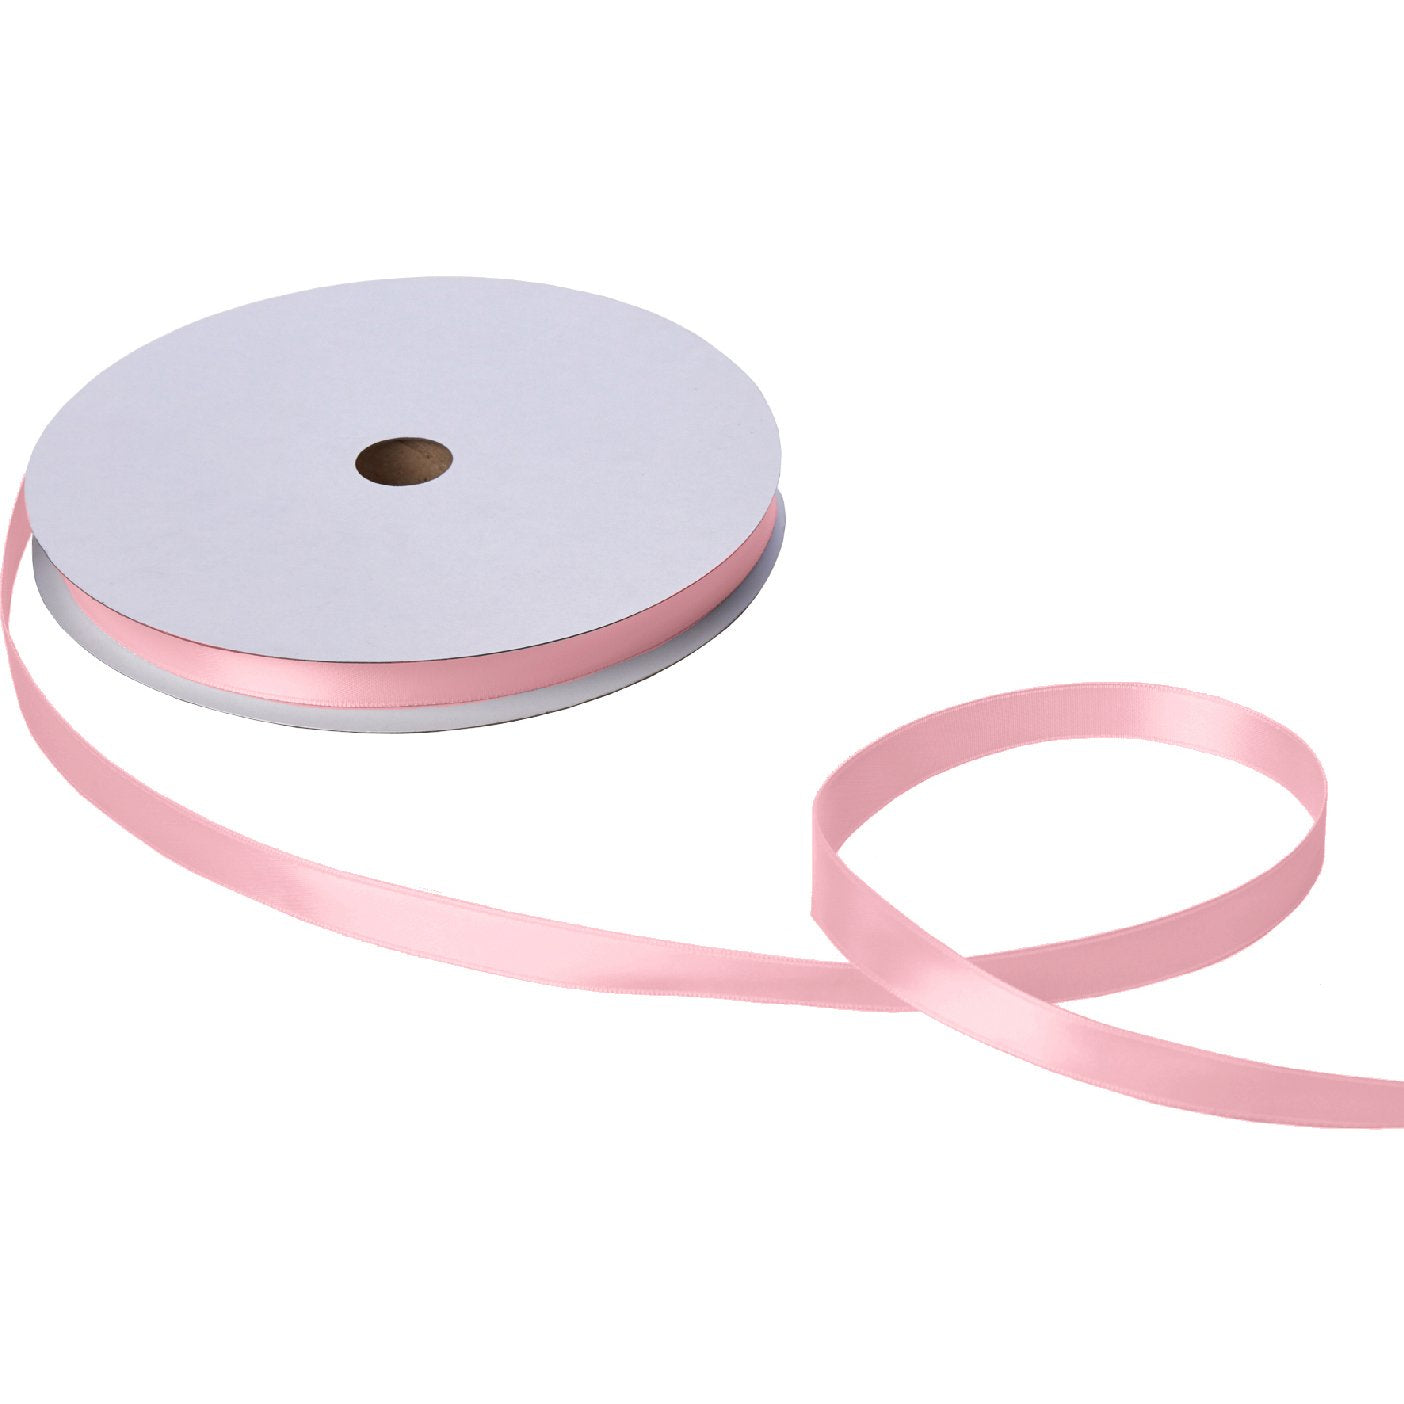 "Jillson & Roberts Double-Faced Satin Ribbon, 5/8"" Wide x 100 Yards, Pastel Pink"